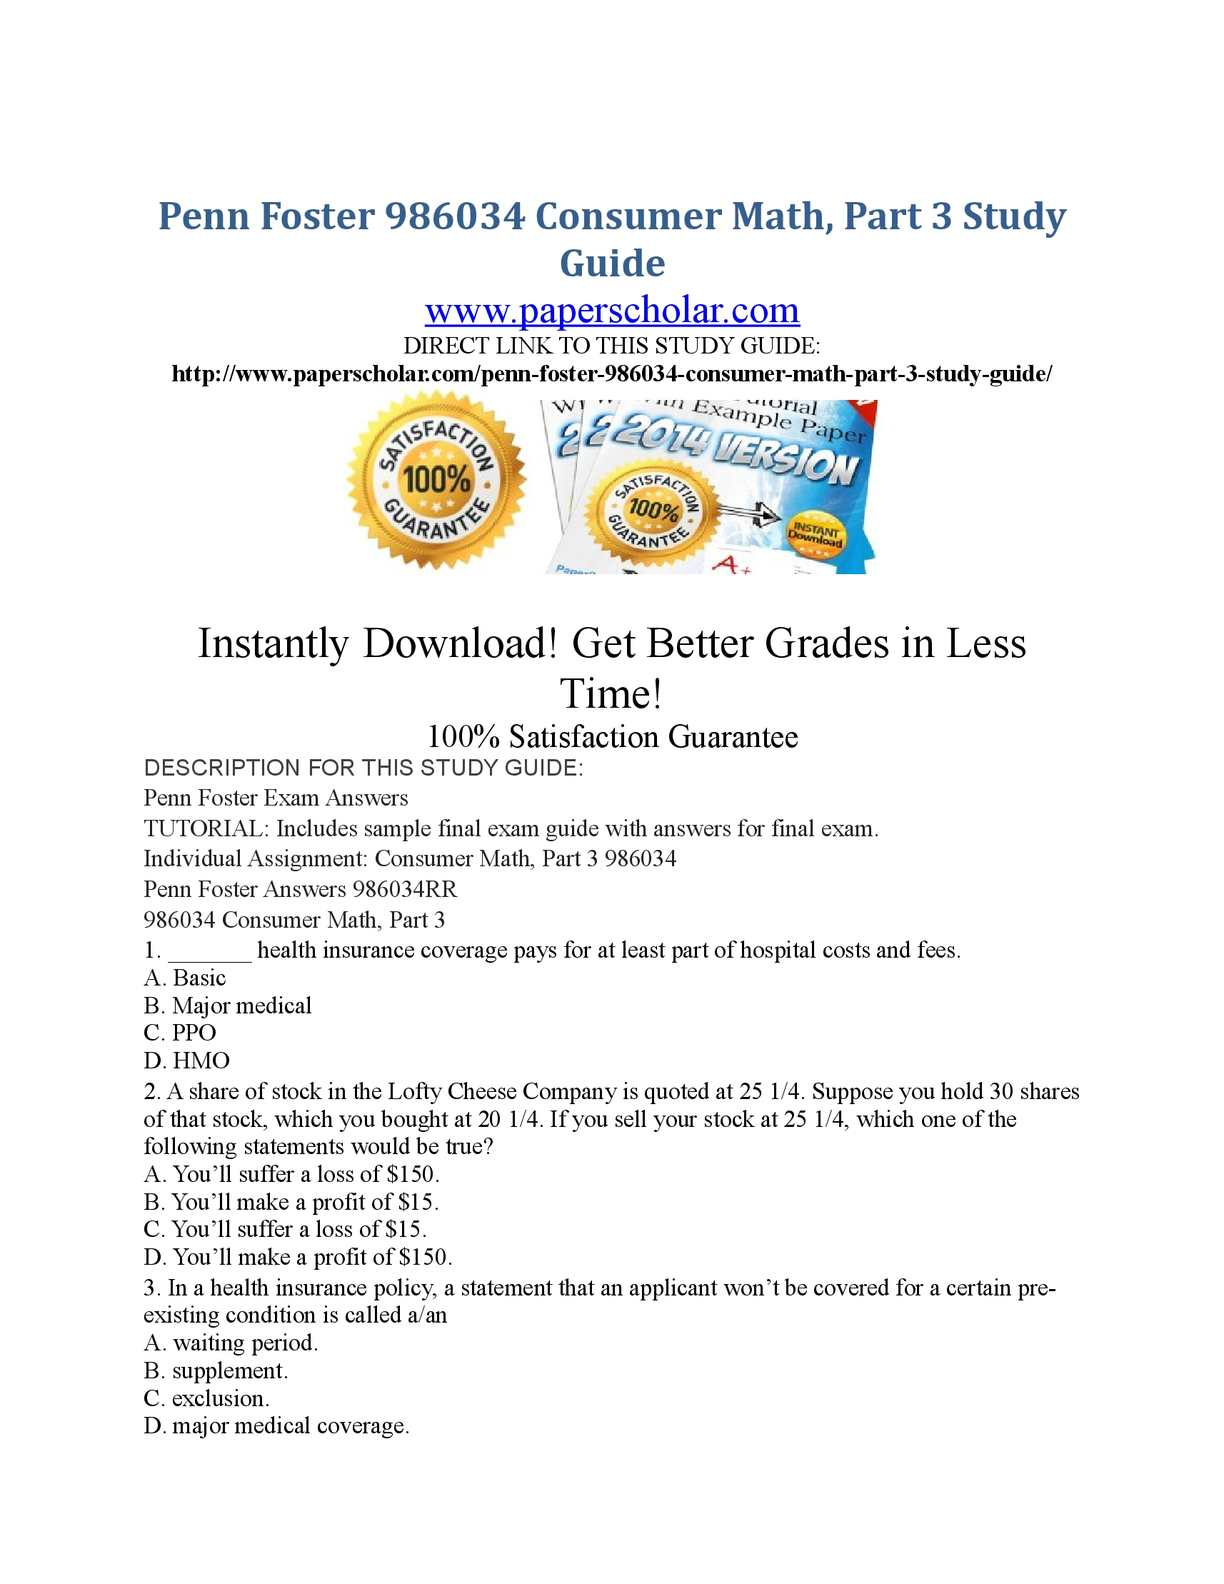 balancing penn foster studies process analysis essay Home essay samples how to balance penn foster studies up with a good mechanism of balancing between penn foster's studies and the essay categories analysis.